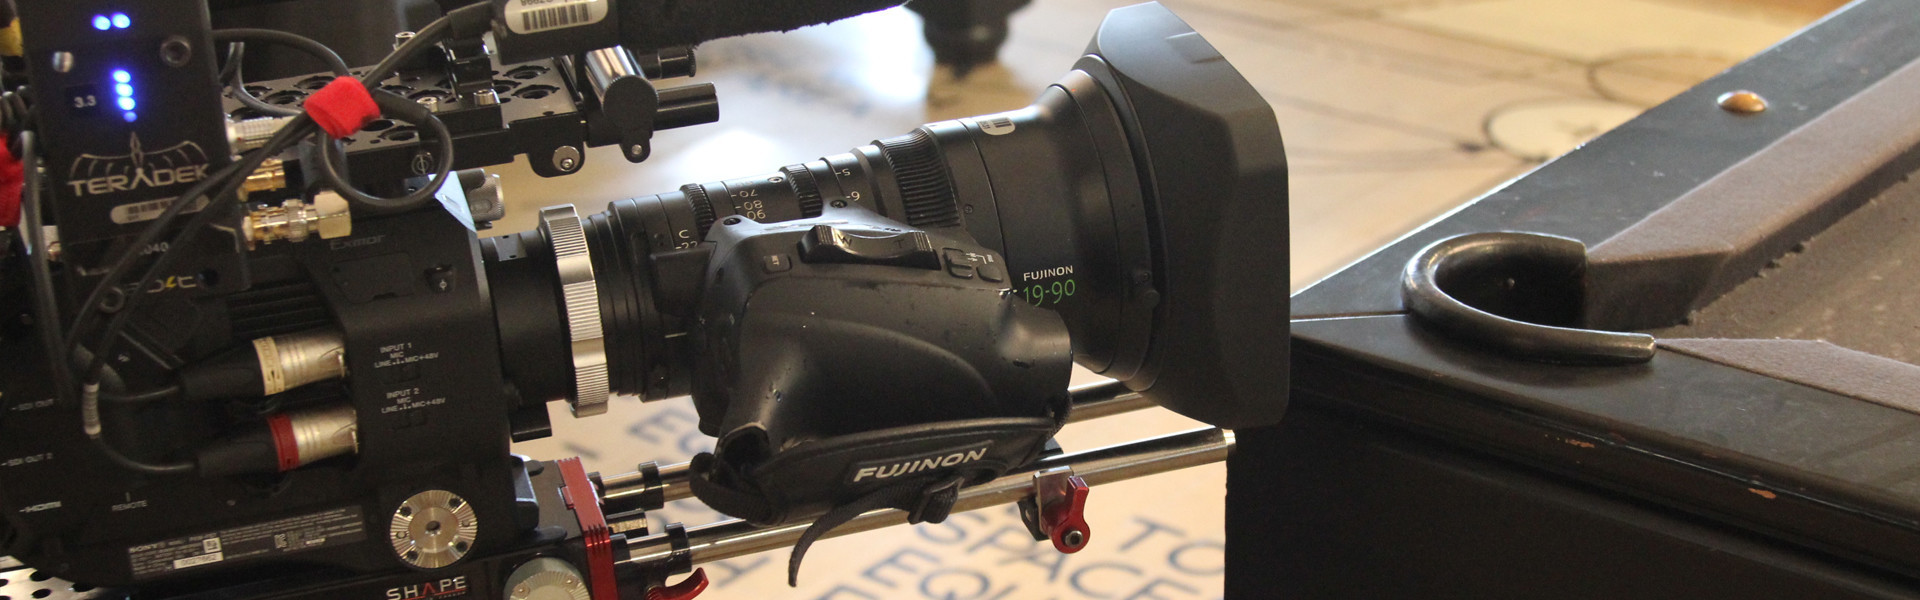 Header image for article Behind the Lens: Fujinon Cabrio 19-90mm Zoom